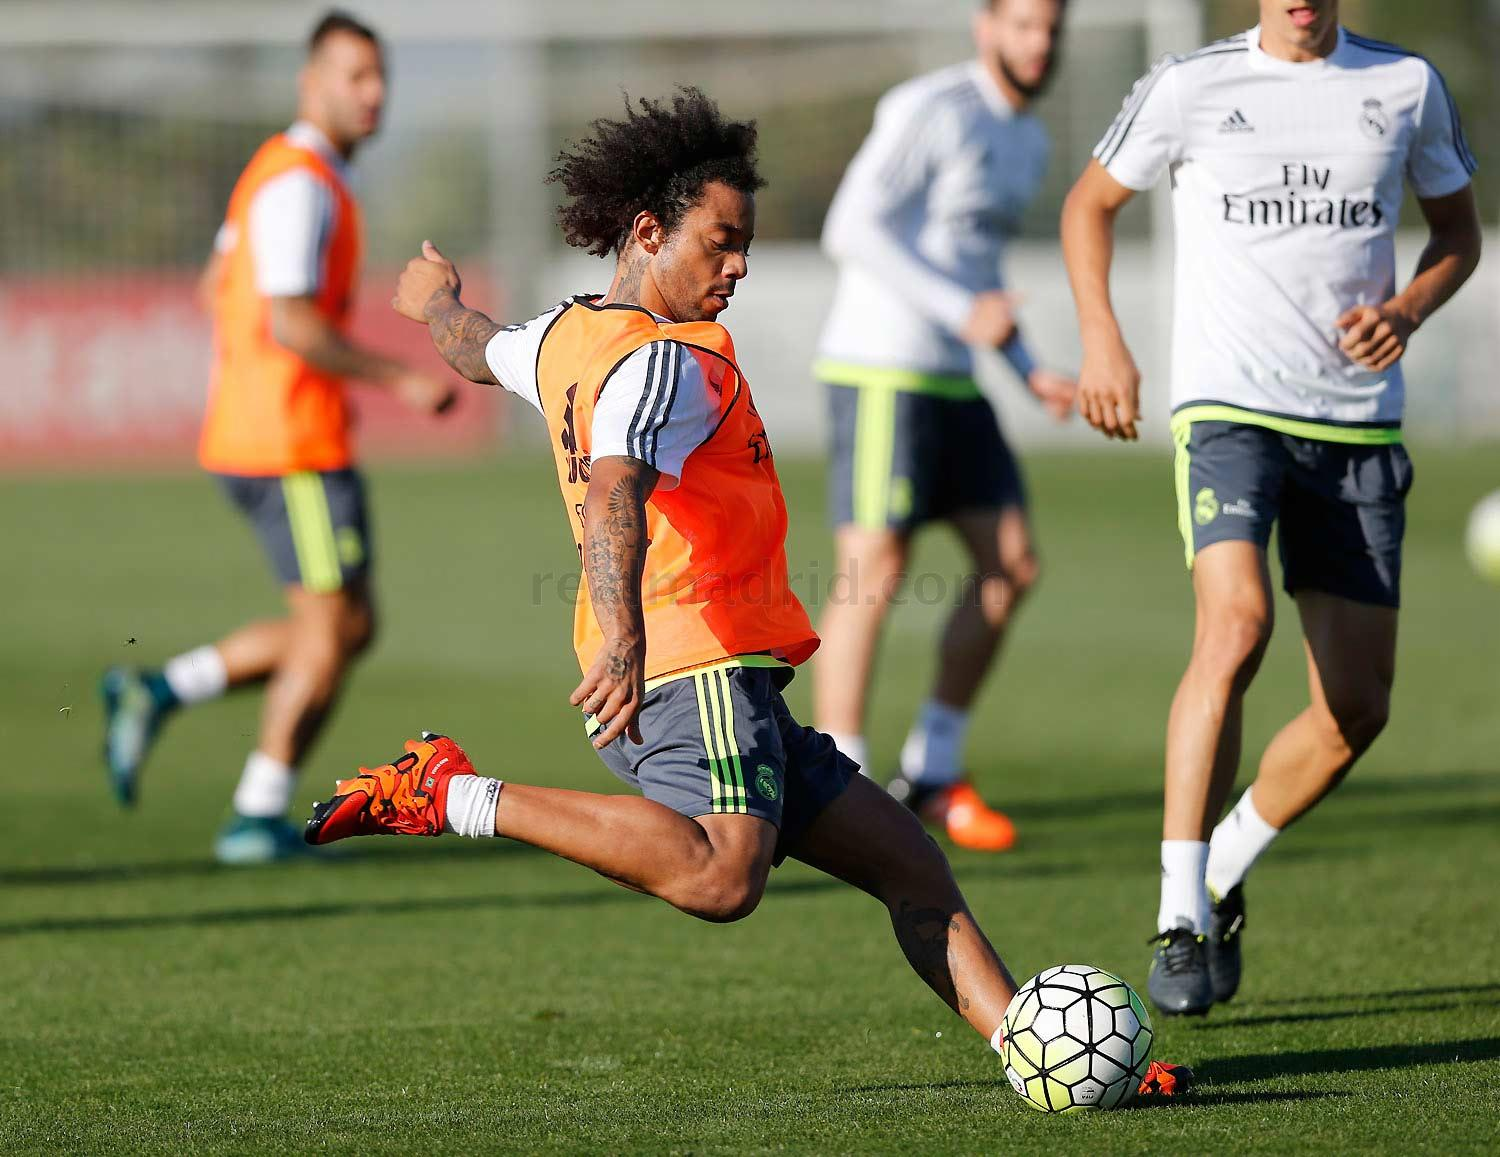 Real Madrid - Entrenamiento del Real Madrid - 15-10-2015